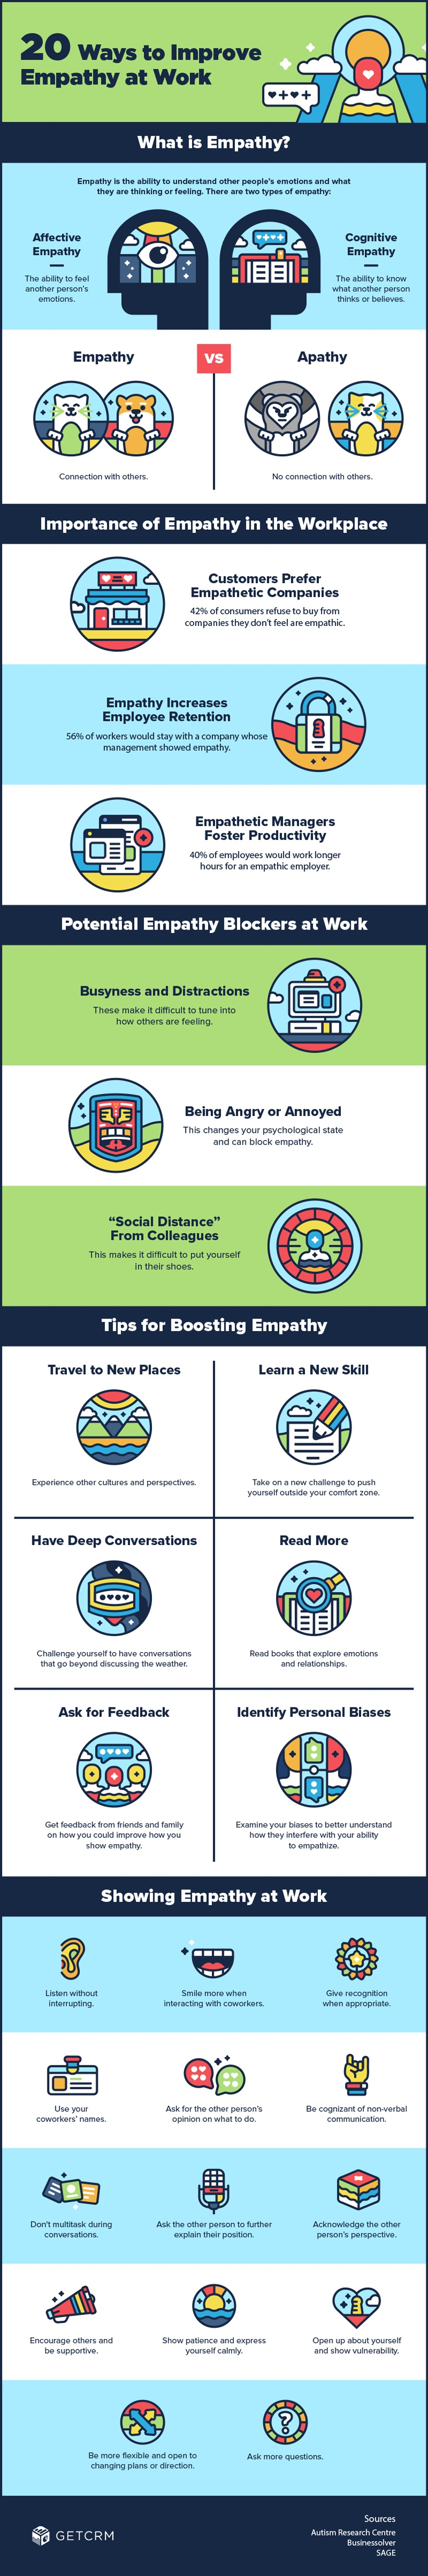 how to improve empathy